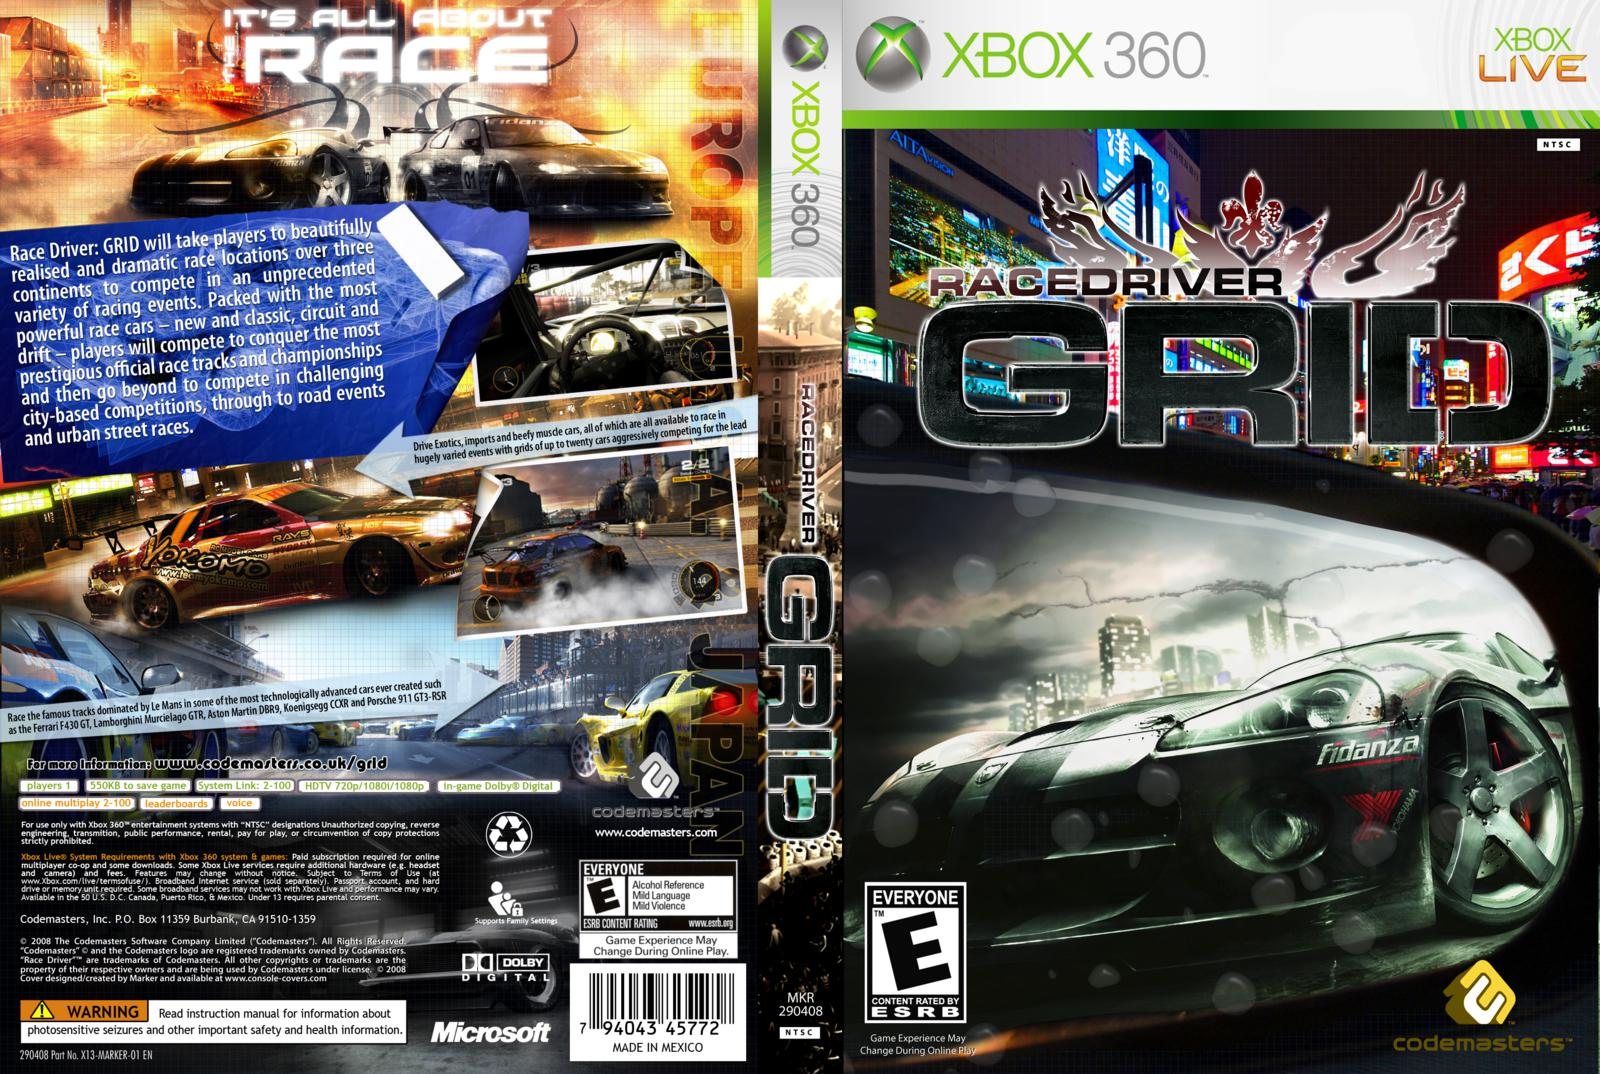 All race driver: grid screenshots for playstation 3.